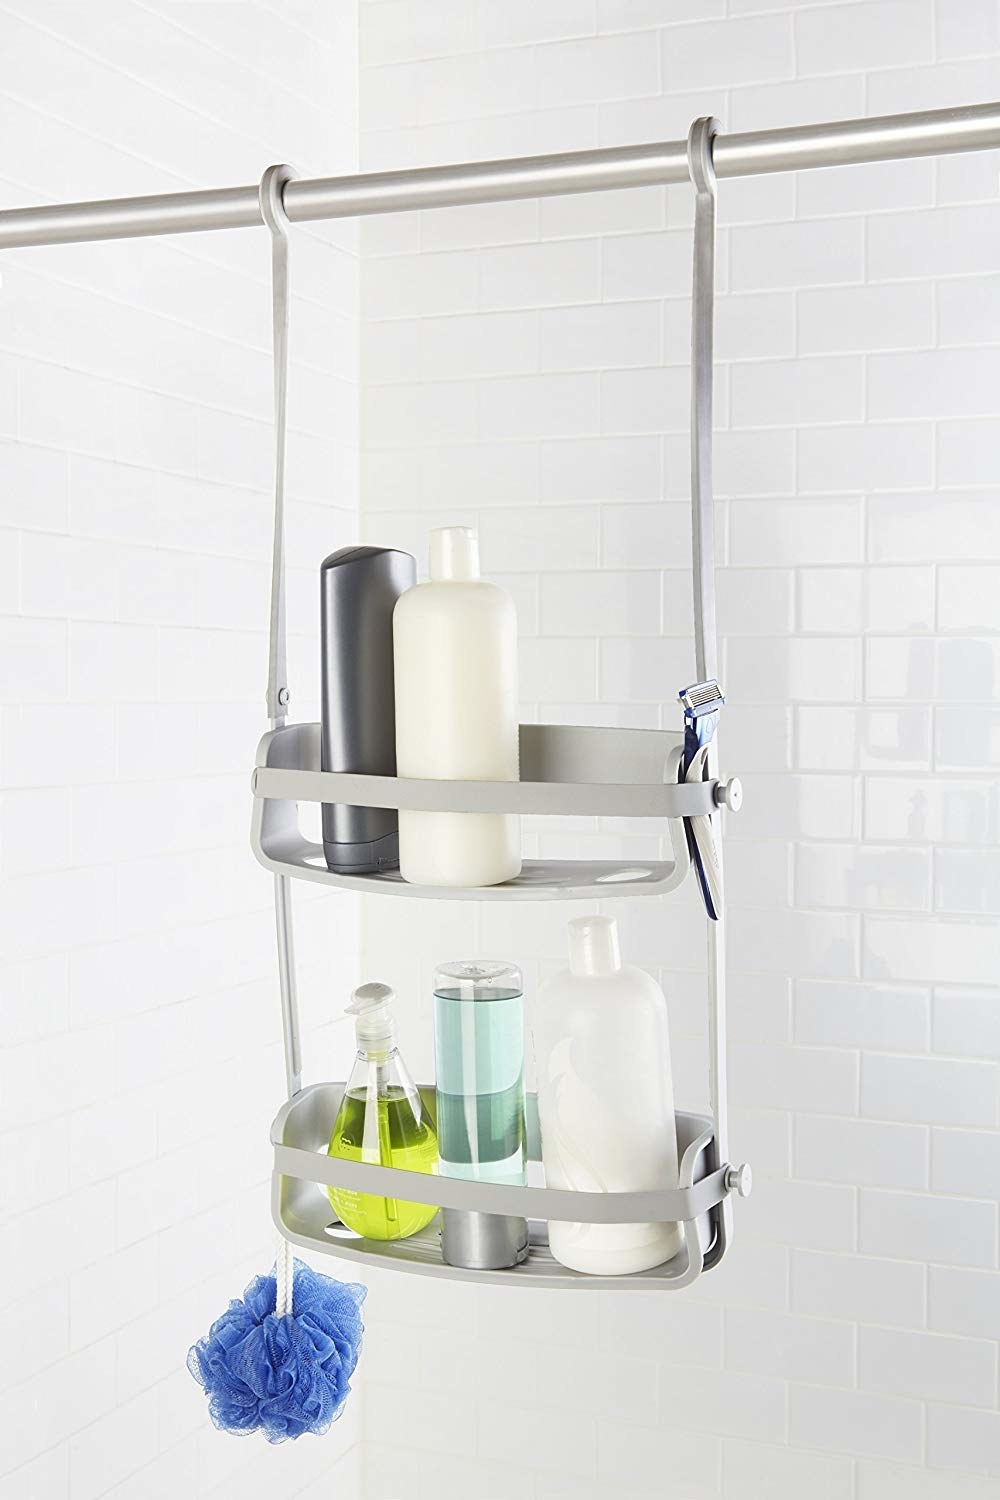 Gray shower caddy with shampoos and loofah